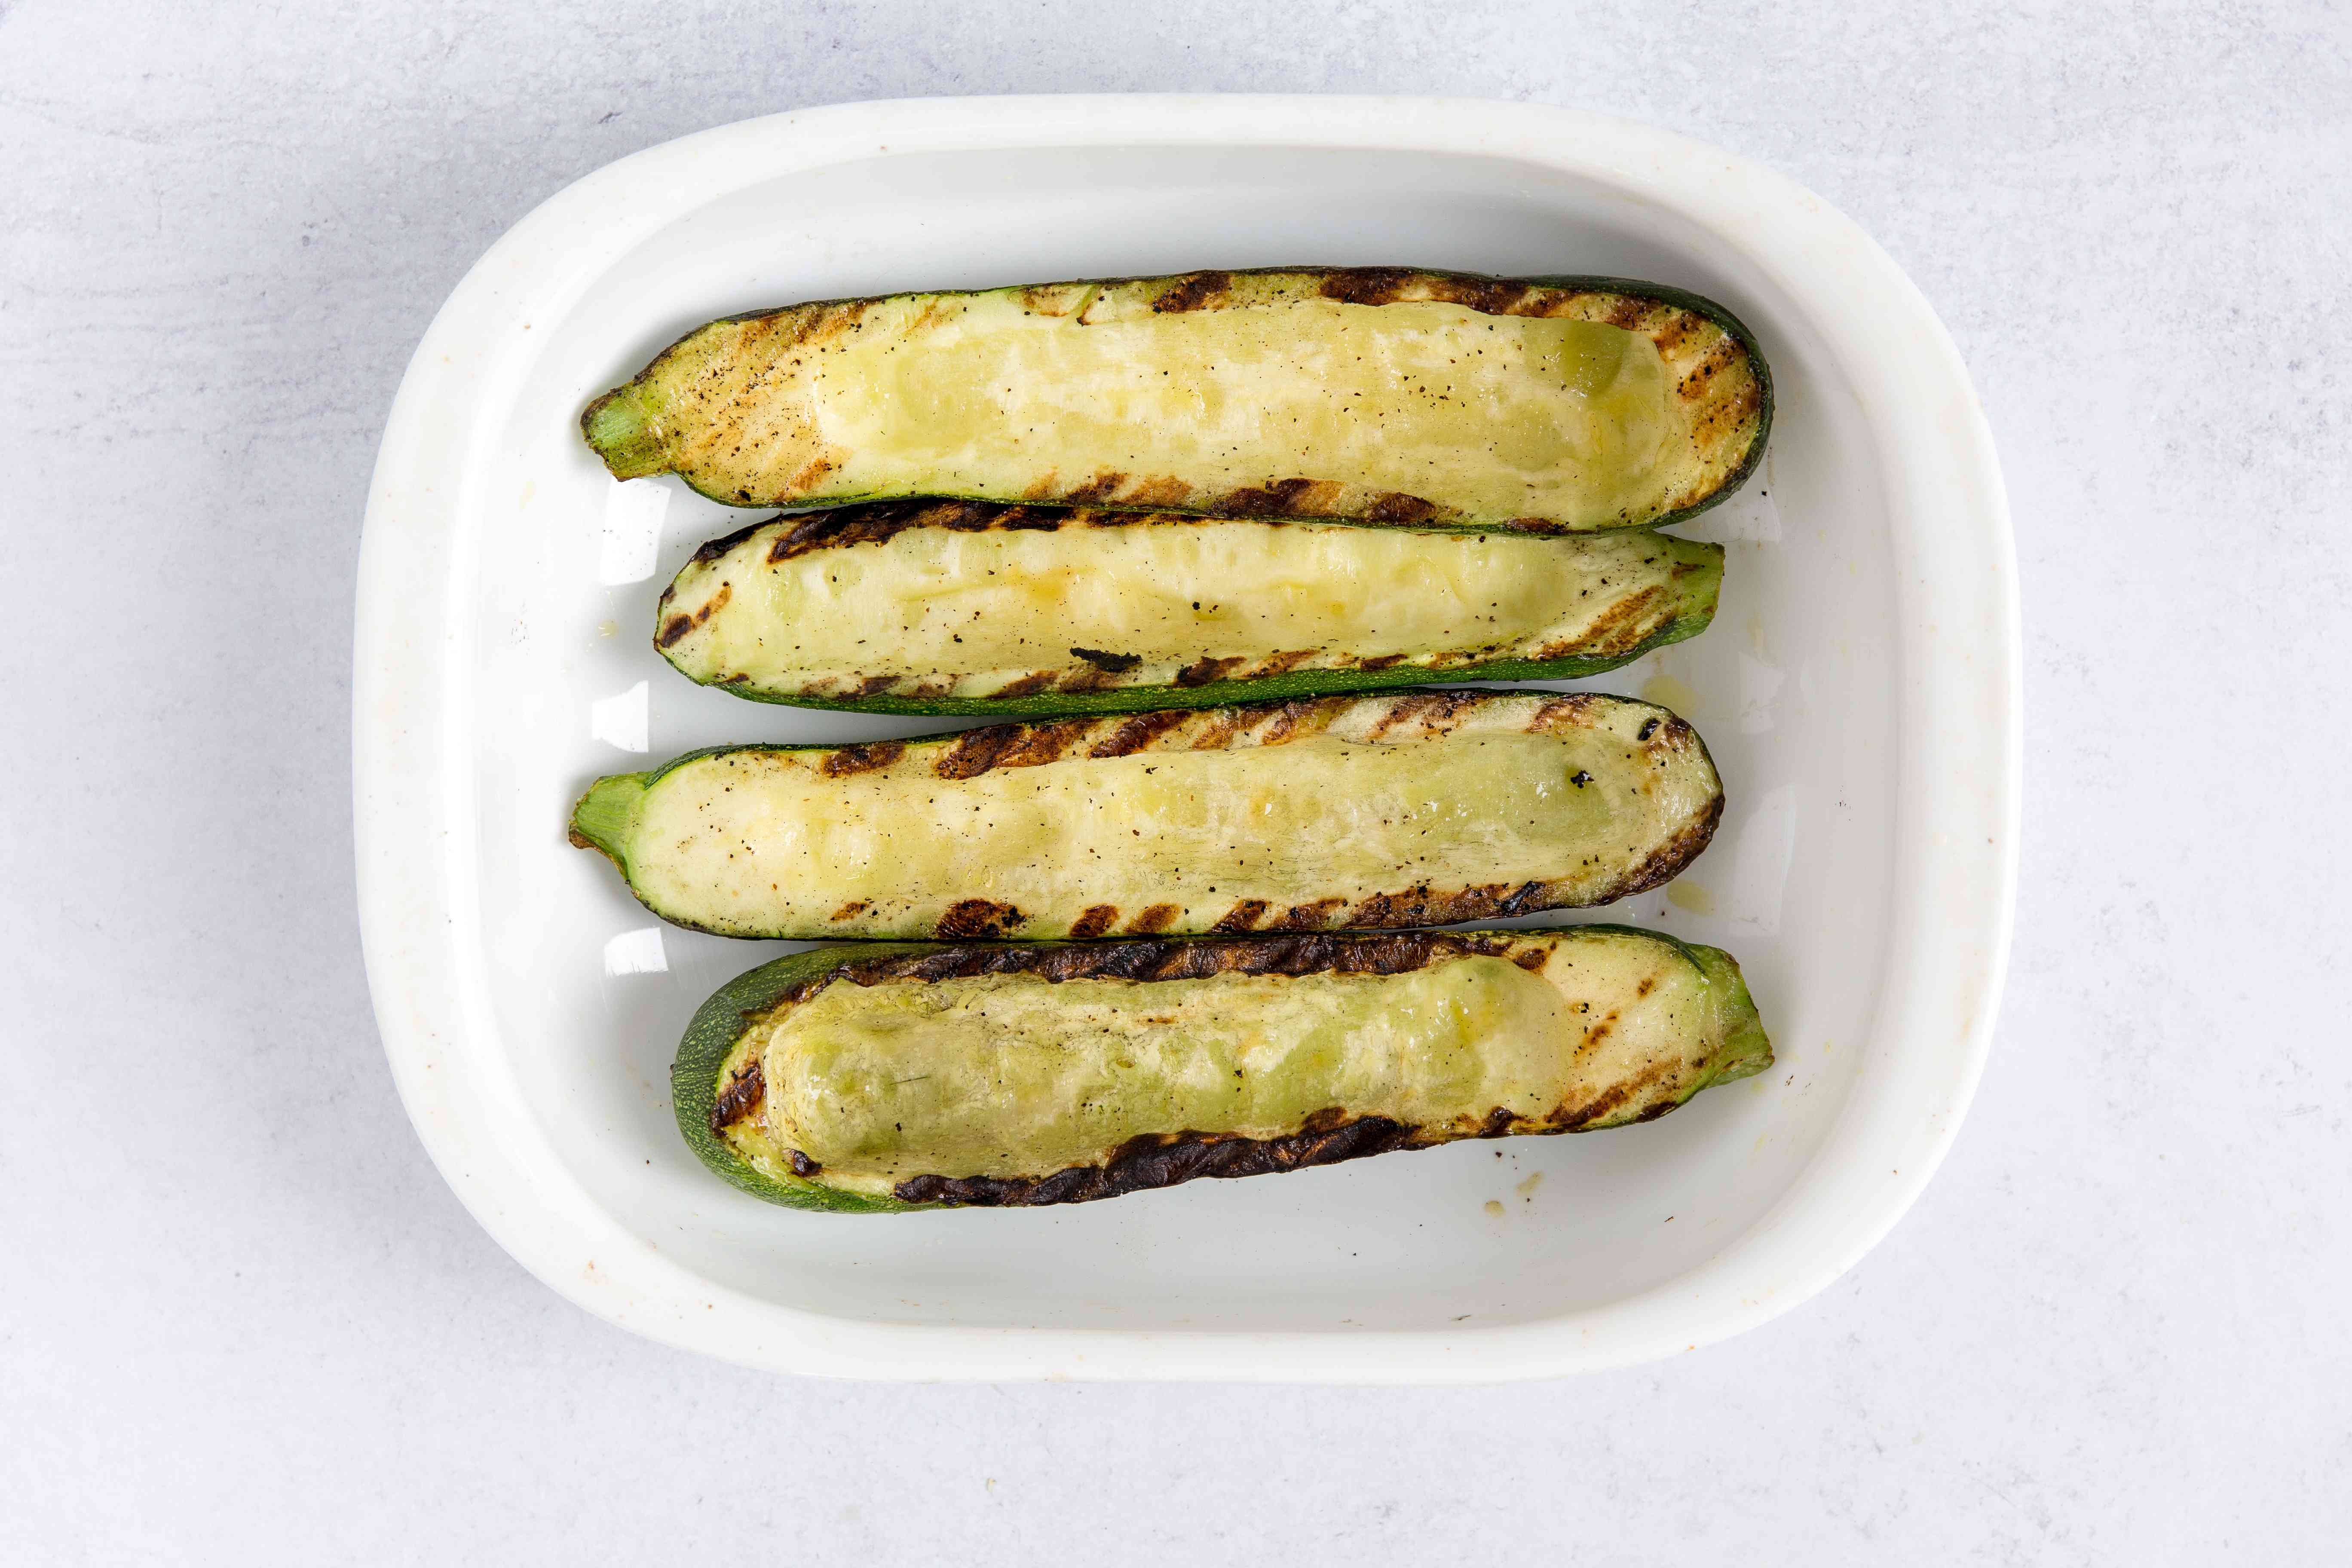 Grilled zucchini in a baking dish.